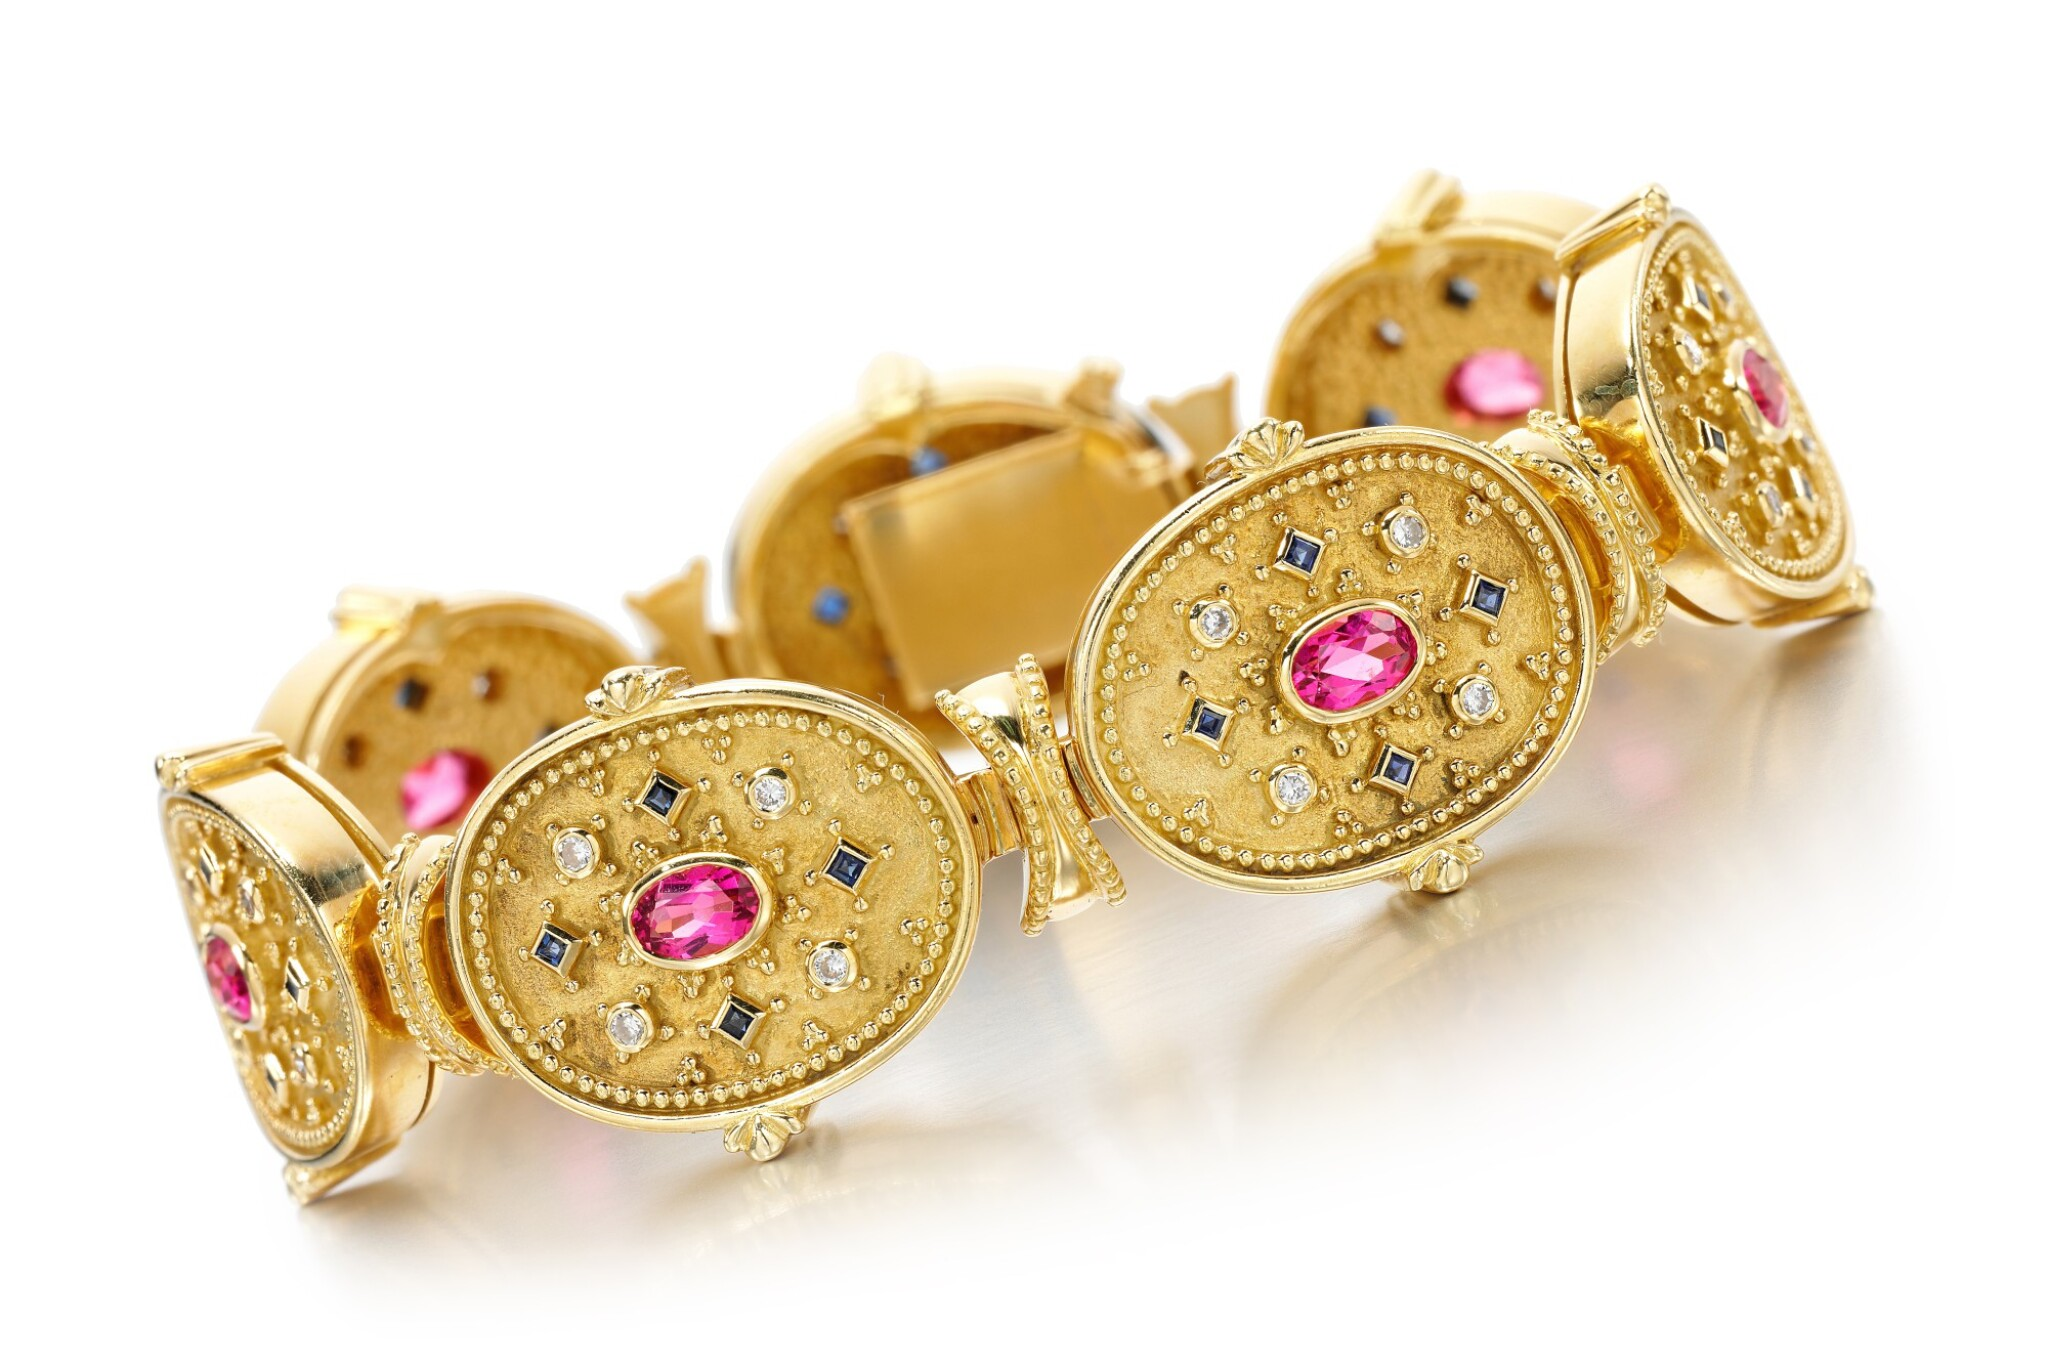 SAPPHIRE, PINK SAPPHIRE AND DIAMOND BRACELET, THEO FENNELL